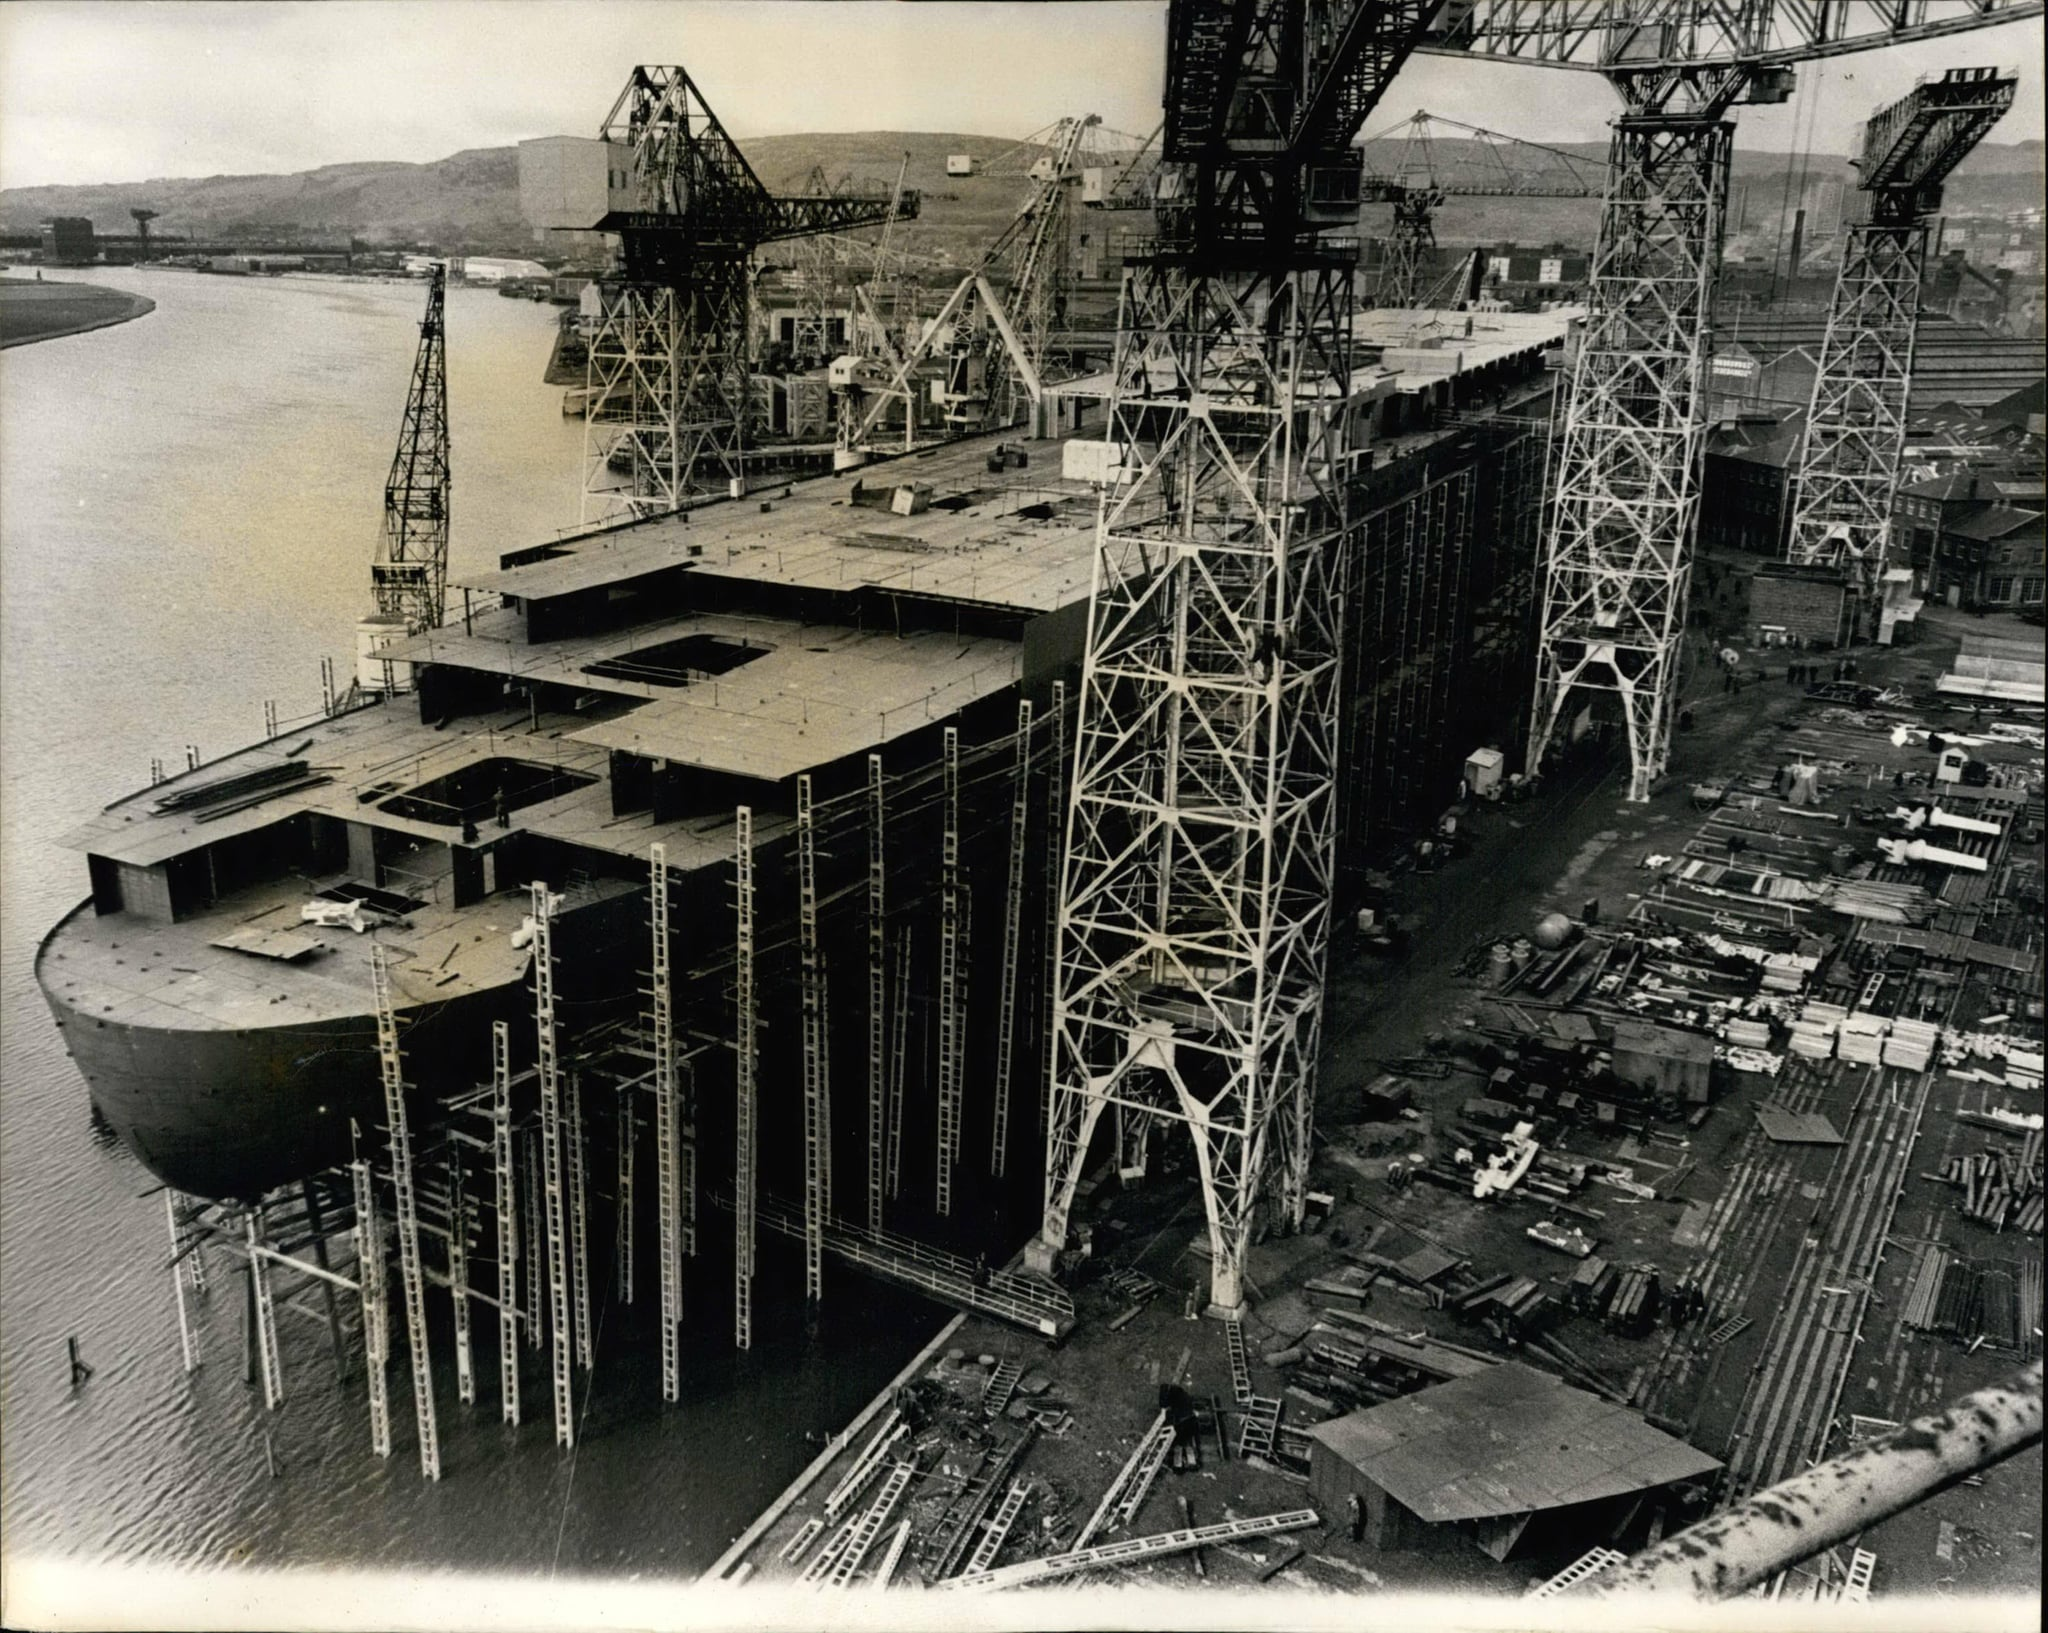 E0XKN9 Mar. 03, 1967 - The Q 4 Takes Shape: New view of the 58,000-ton liner Q.4., pictured yesterday at John Brown's shipyard, Clydebank, where she is now taking shape. the stern is almost finished and the - prefabricated decks are starting to go on top. The liner is to be launched by H.M. The Queen on September 30.